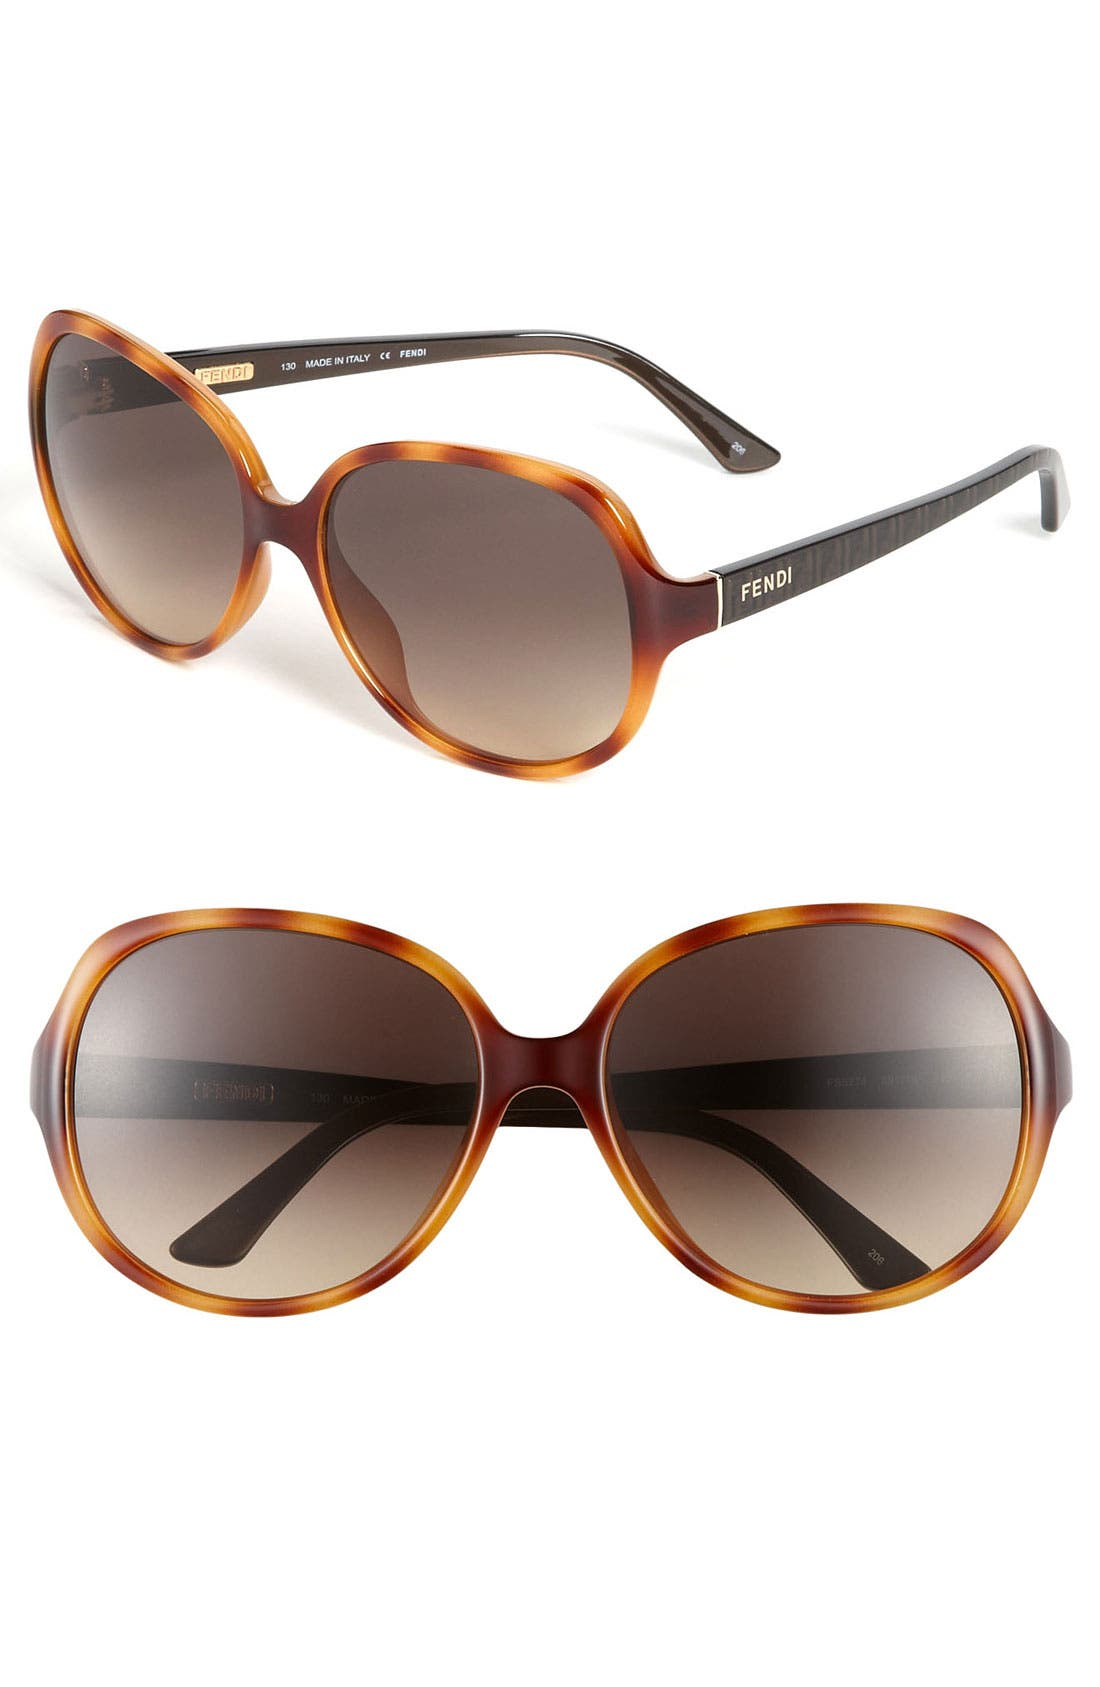 Main Image - Fendi 59mm Sunglasses